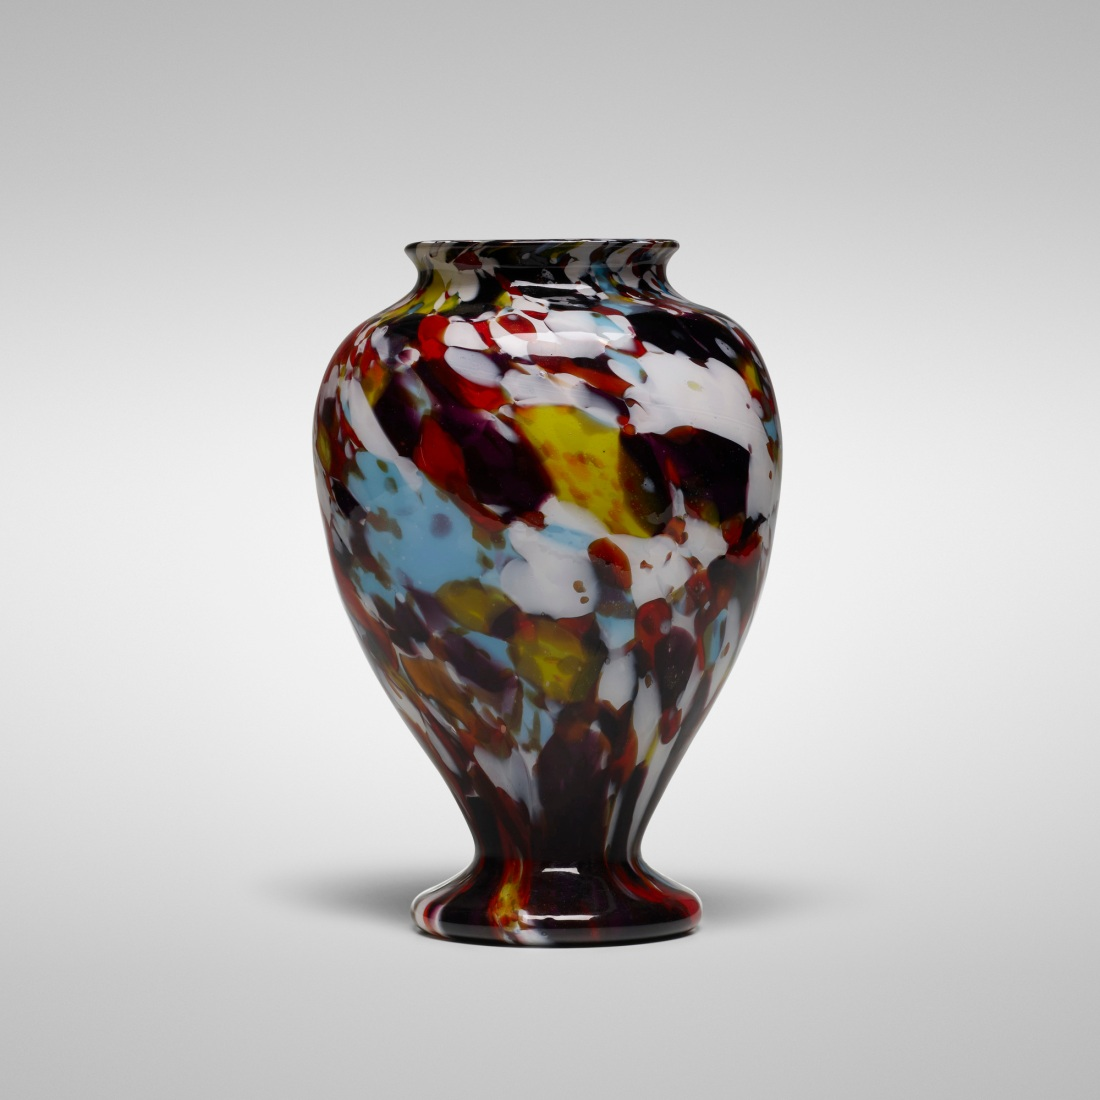 223_1_the_design_collection_of_dimitri_levas_june_2017_francesco_ferro_e_figlio_macchie_vase__wright_auction